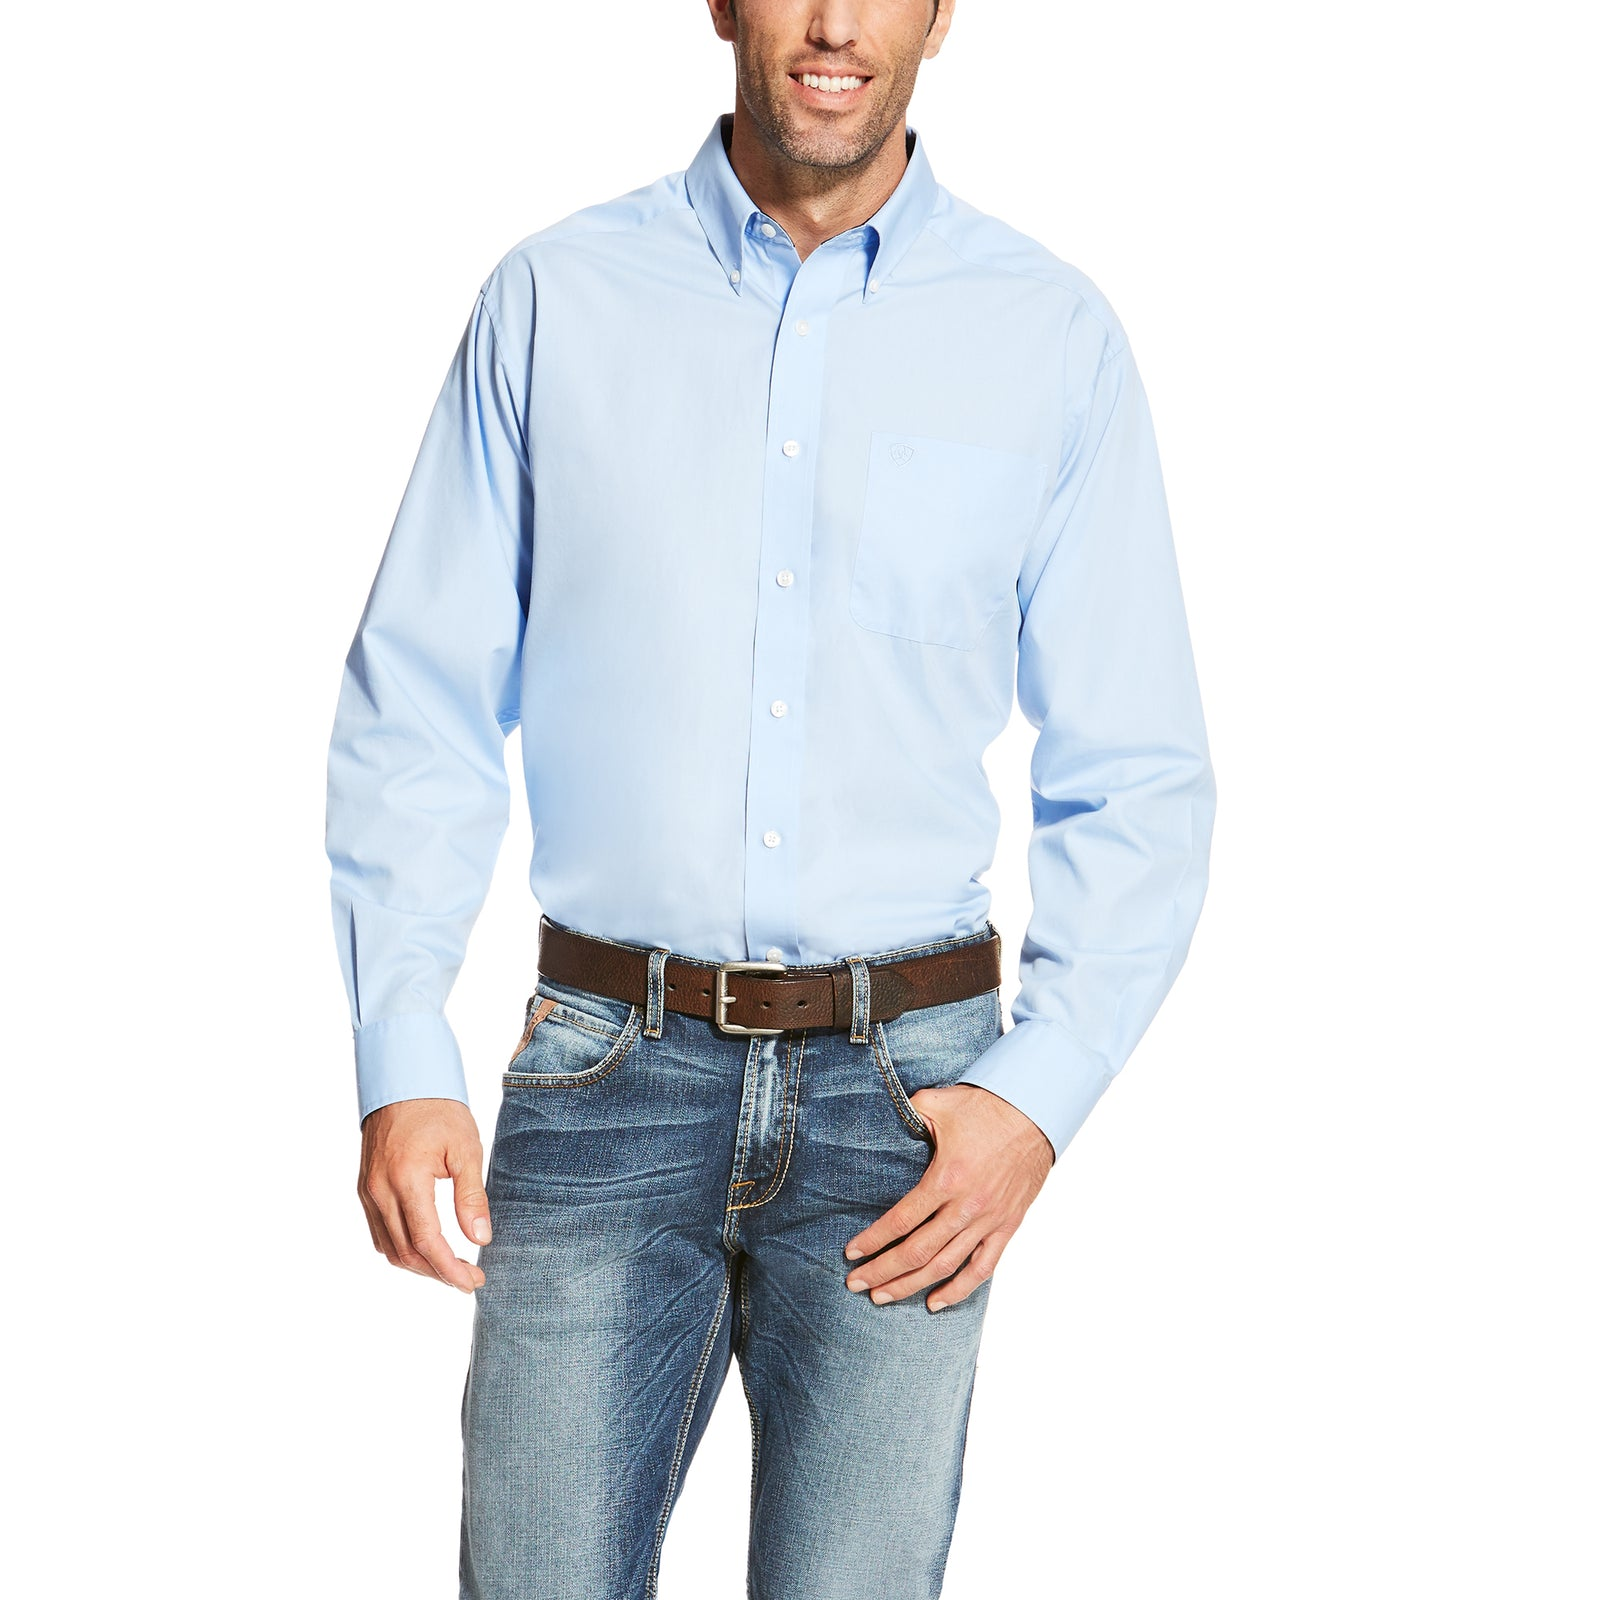 Ariat Men's Wrinkle Free Solid Long Sleeve Light Blue Shirt